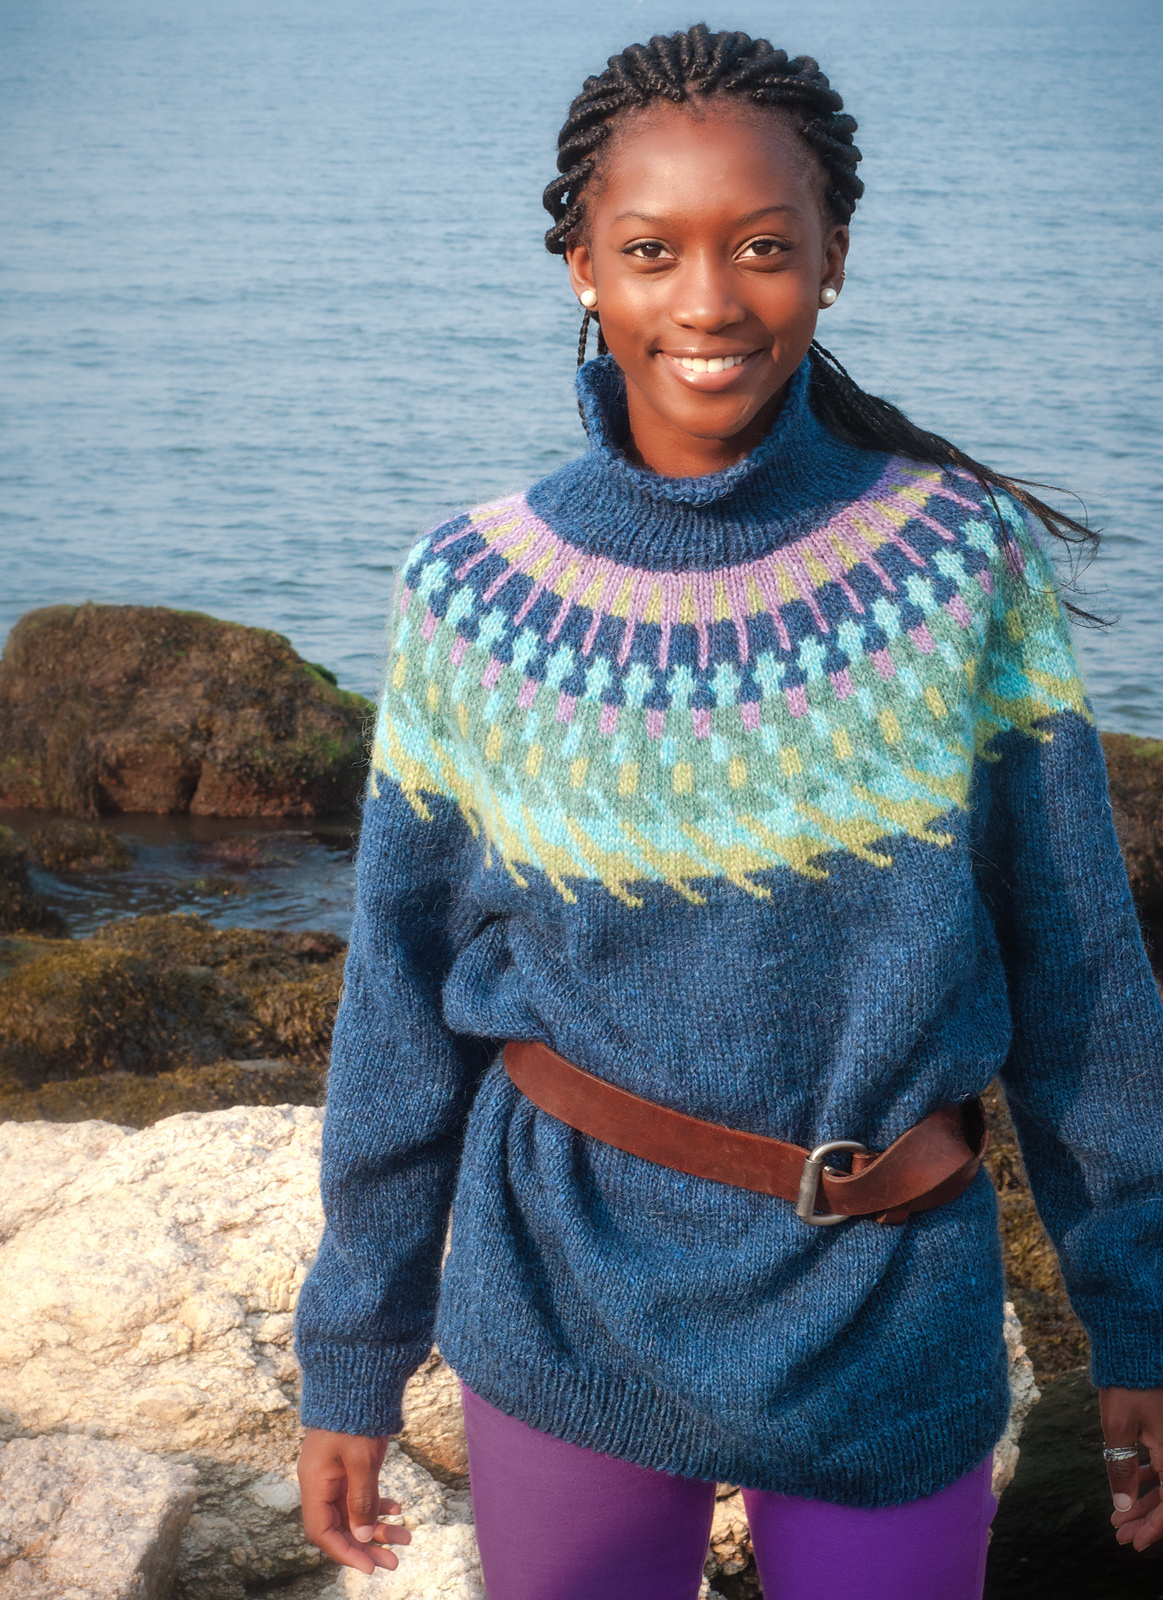 Free Lopi Knitting Patterns Knit A Lopi Sweater With Us Knitting And Crochet Techniques From